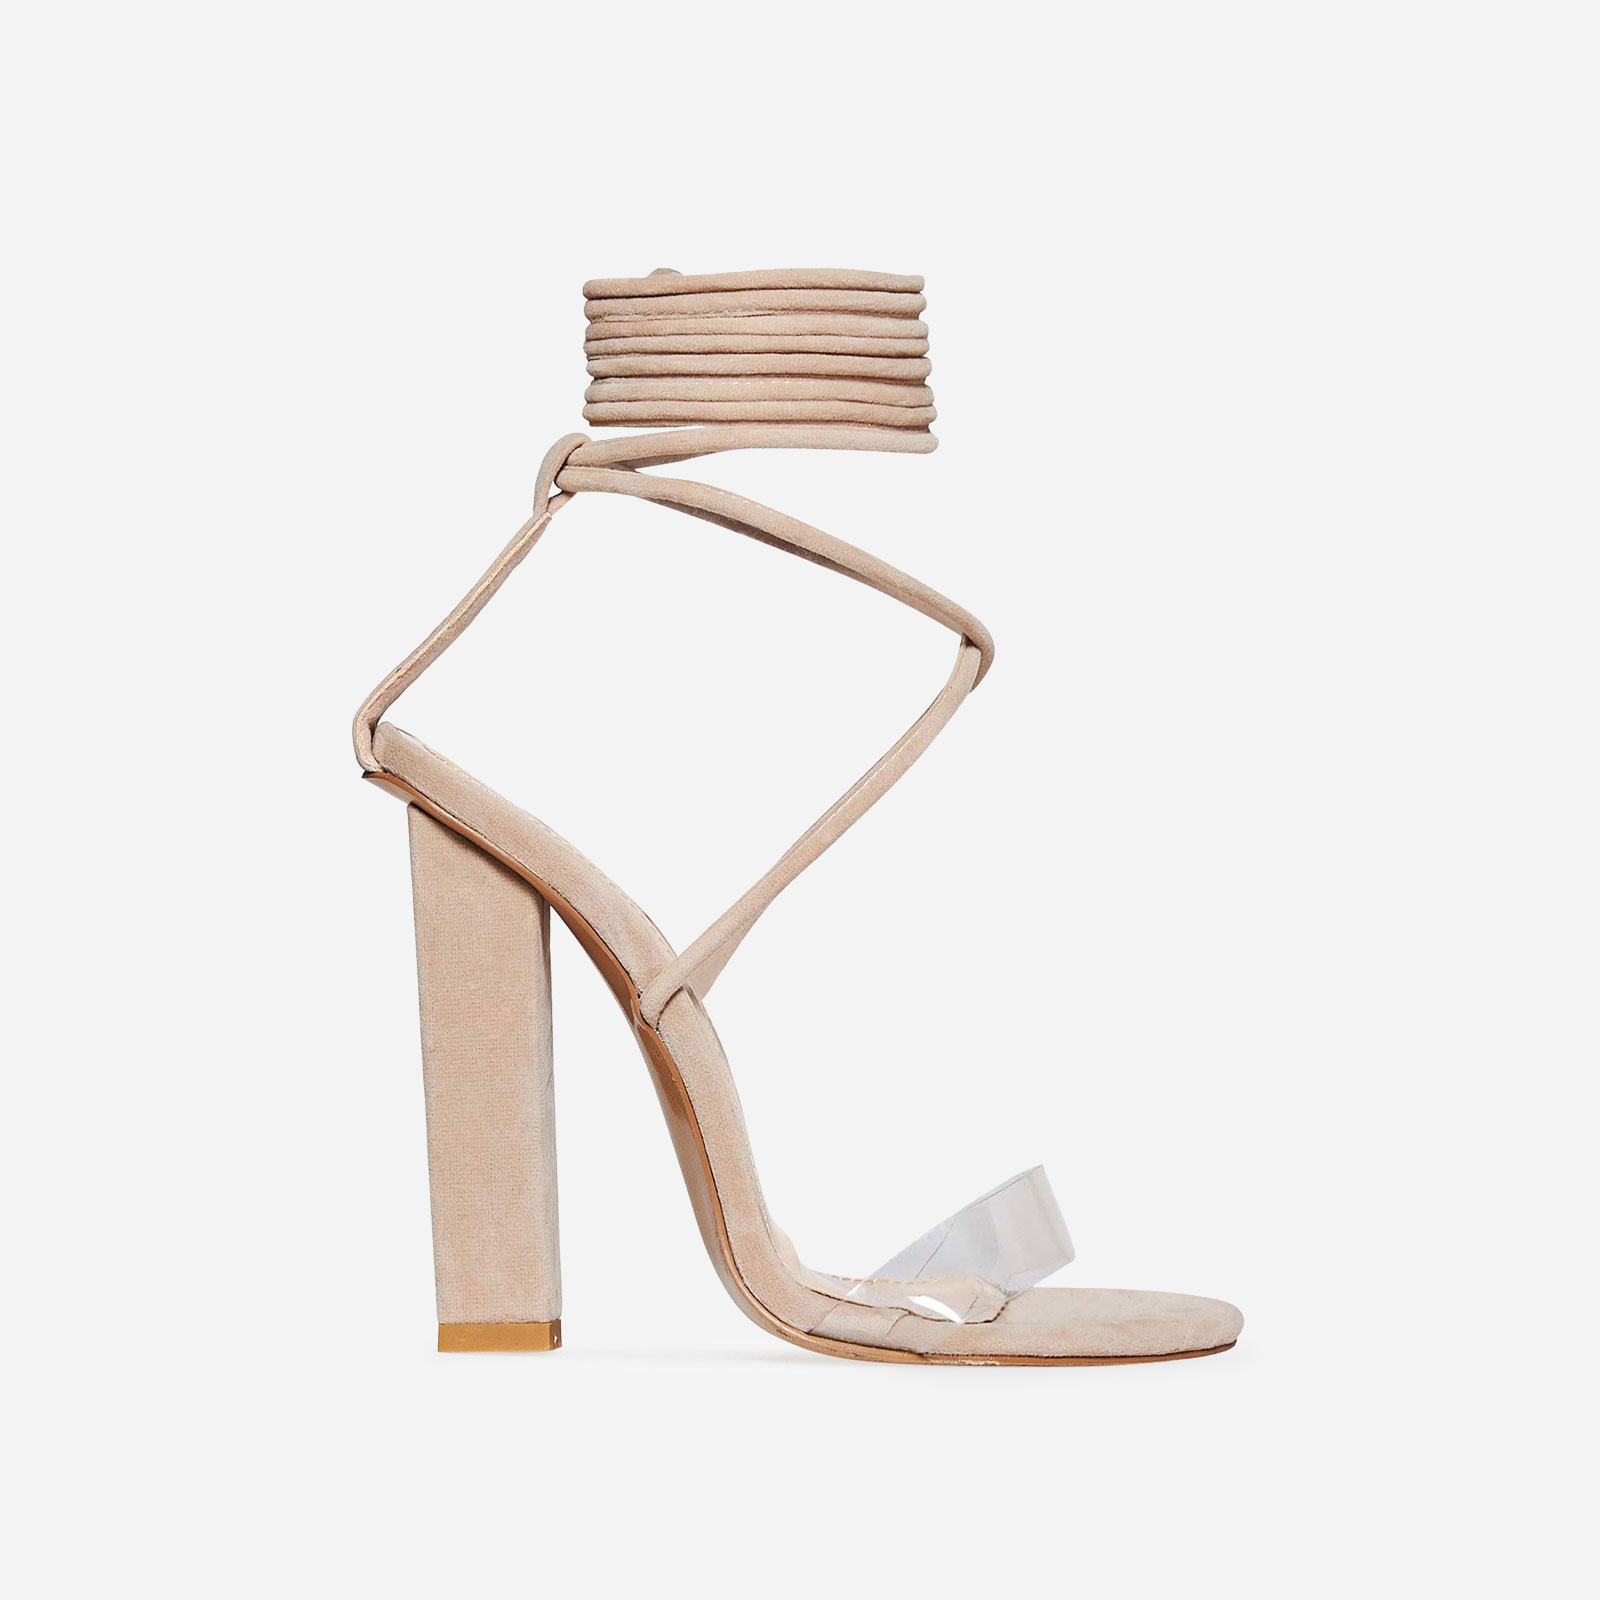 25469af19d3 Bello Perspex Lace Up Block Heel In Nude Faux Suede